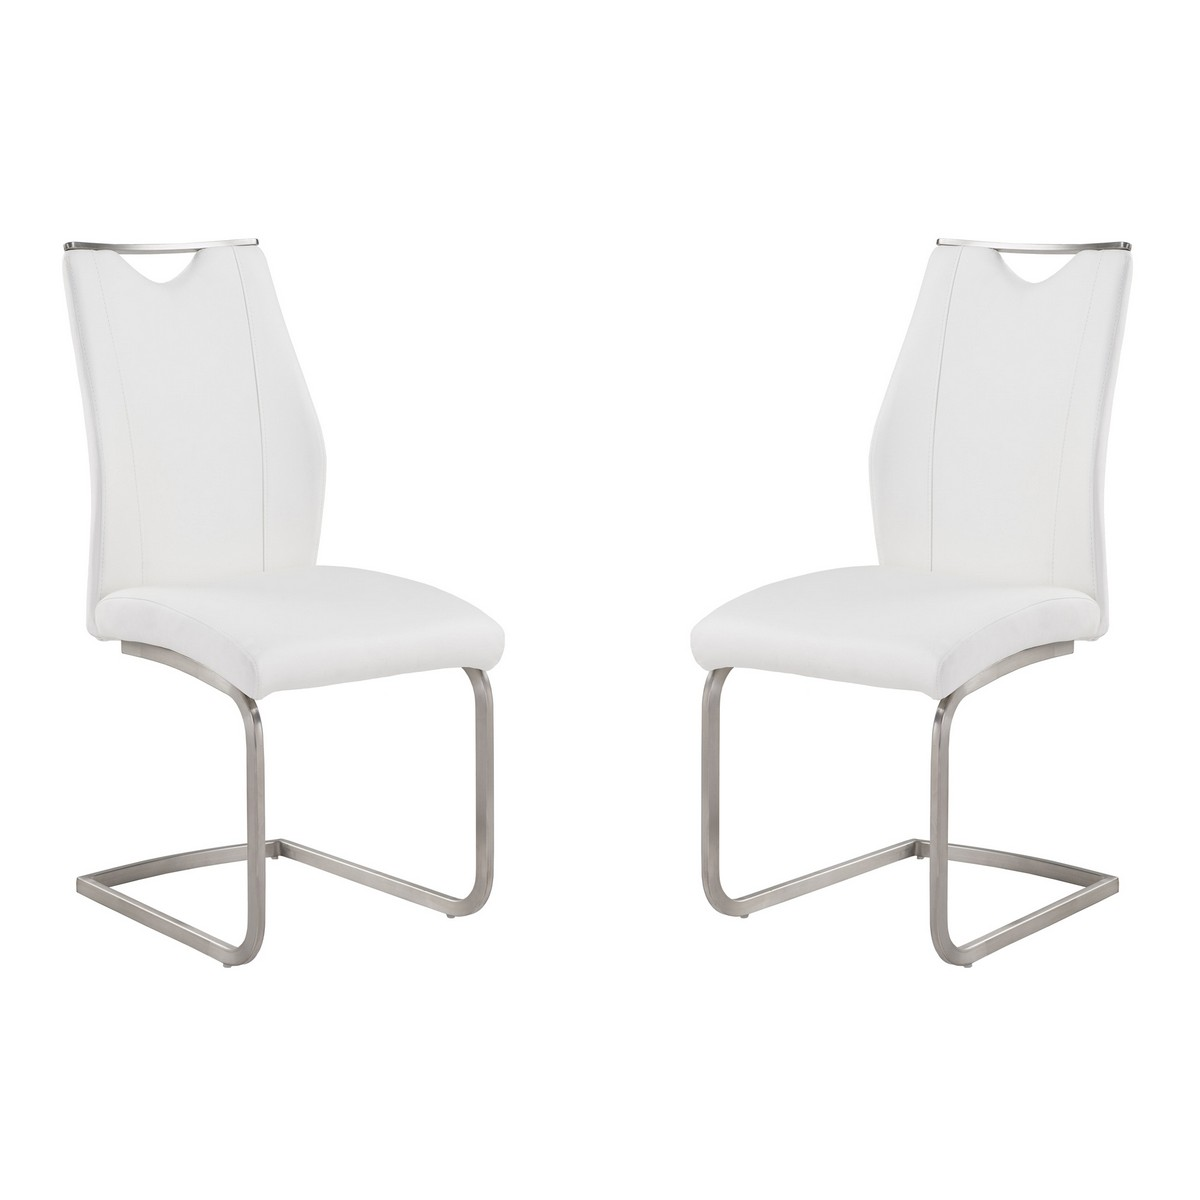 Armen Living Bravo Contemporary Side Chair In White and Stainless Steel